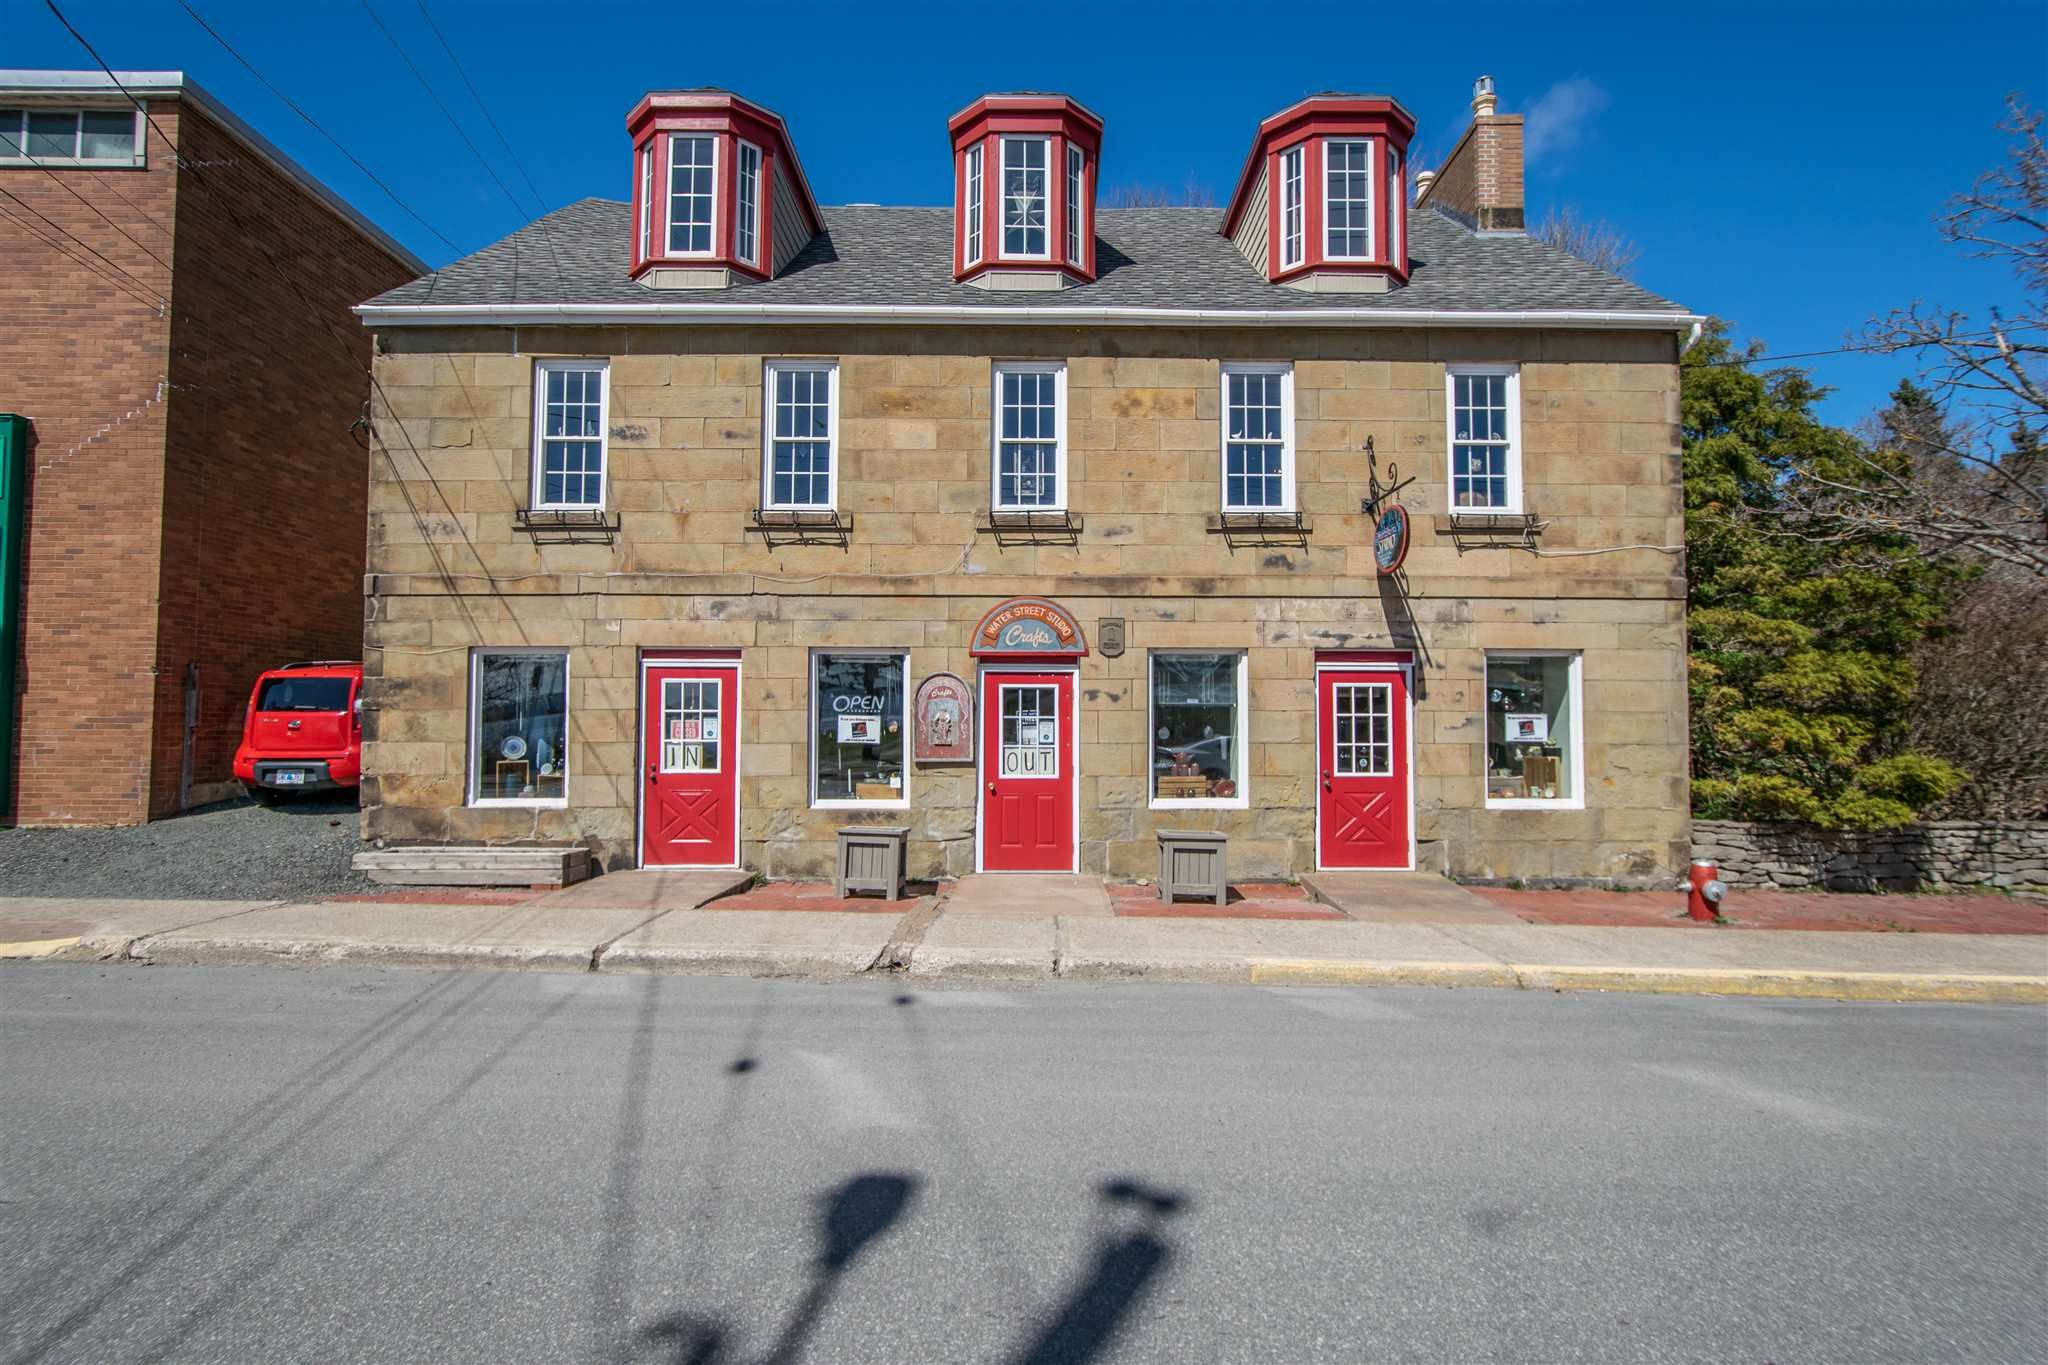 Main Photo: 110 Water Street in Pictou: 107-Trenton,Westville,Pictou Residential for sale (Northern Region)  : MLS®# 202109206